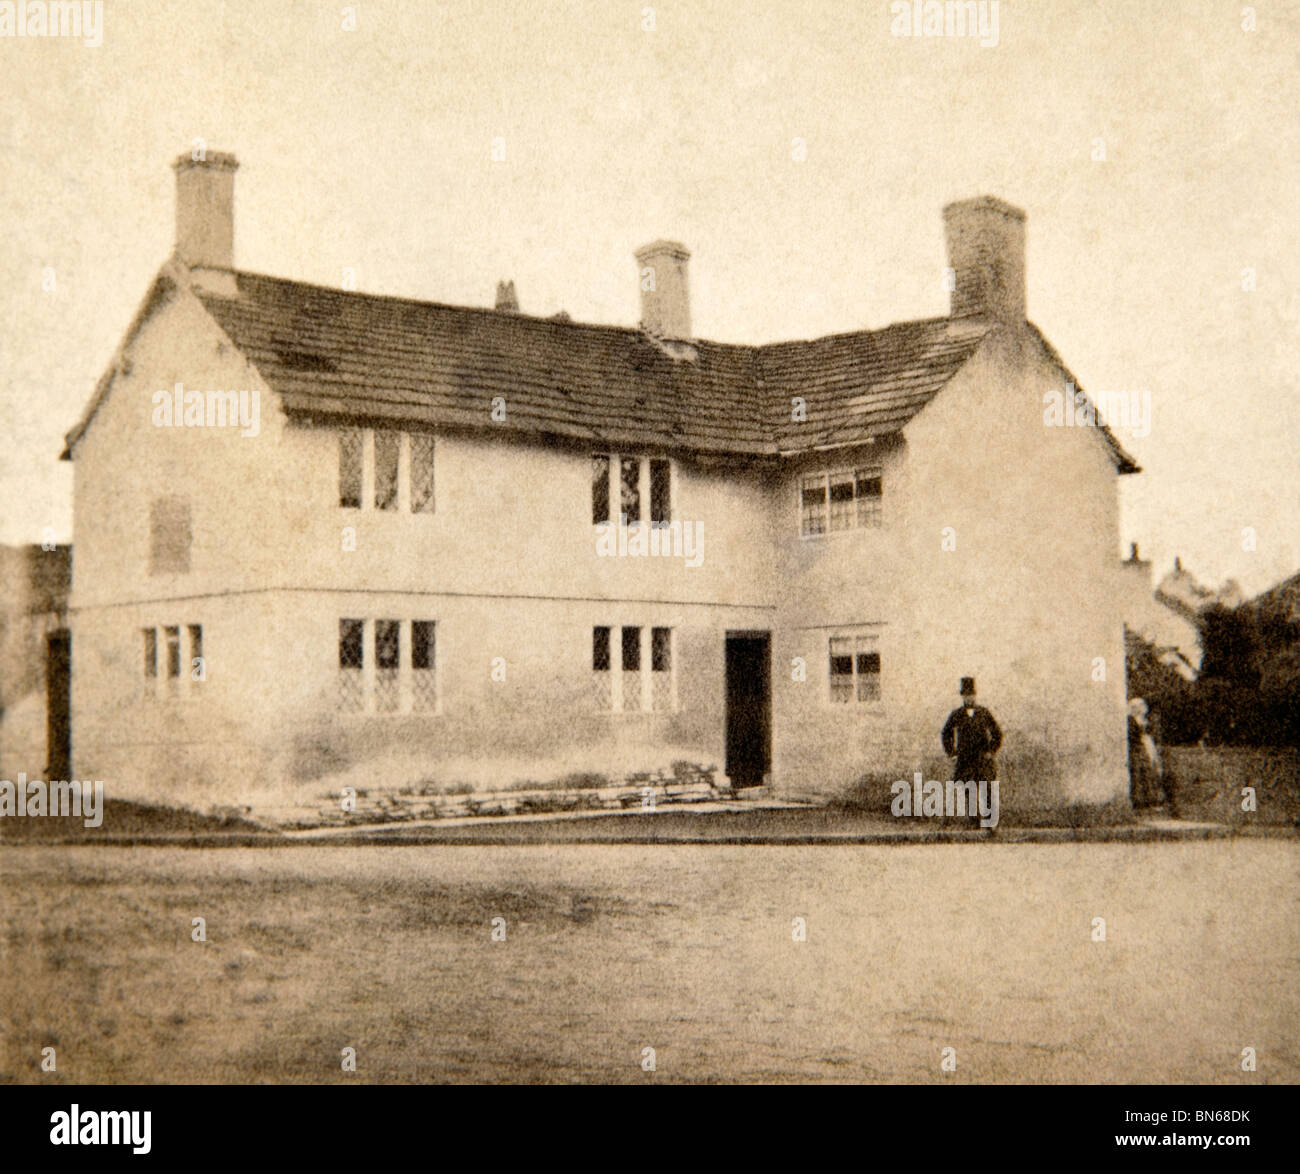 UK, England, Cheshire, Prestbury, The Old School House, 1860s Victorian photograph - Stock Image